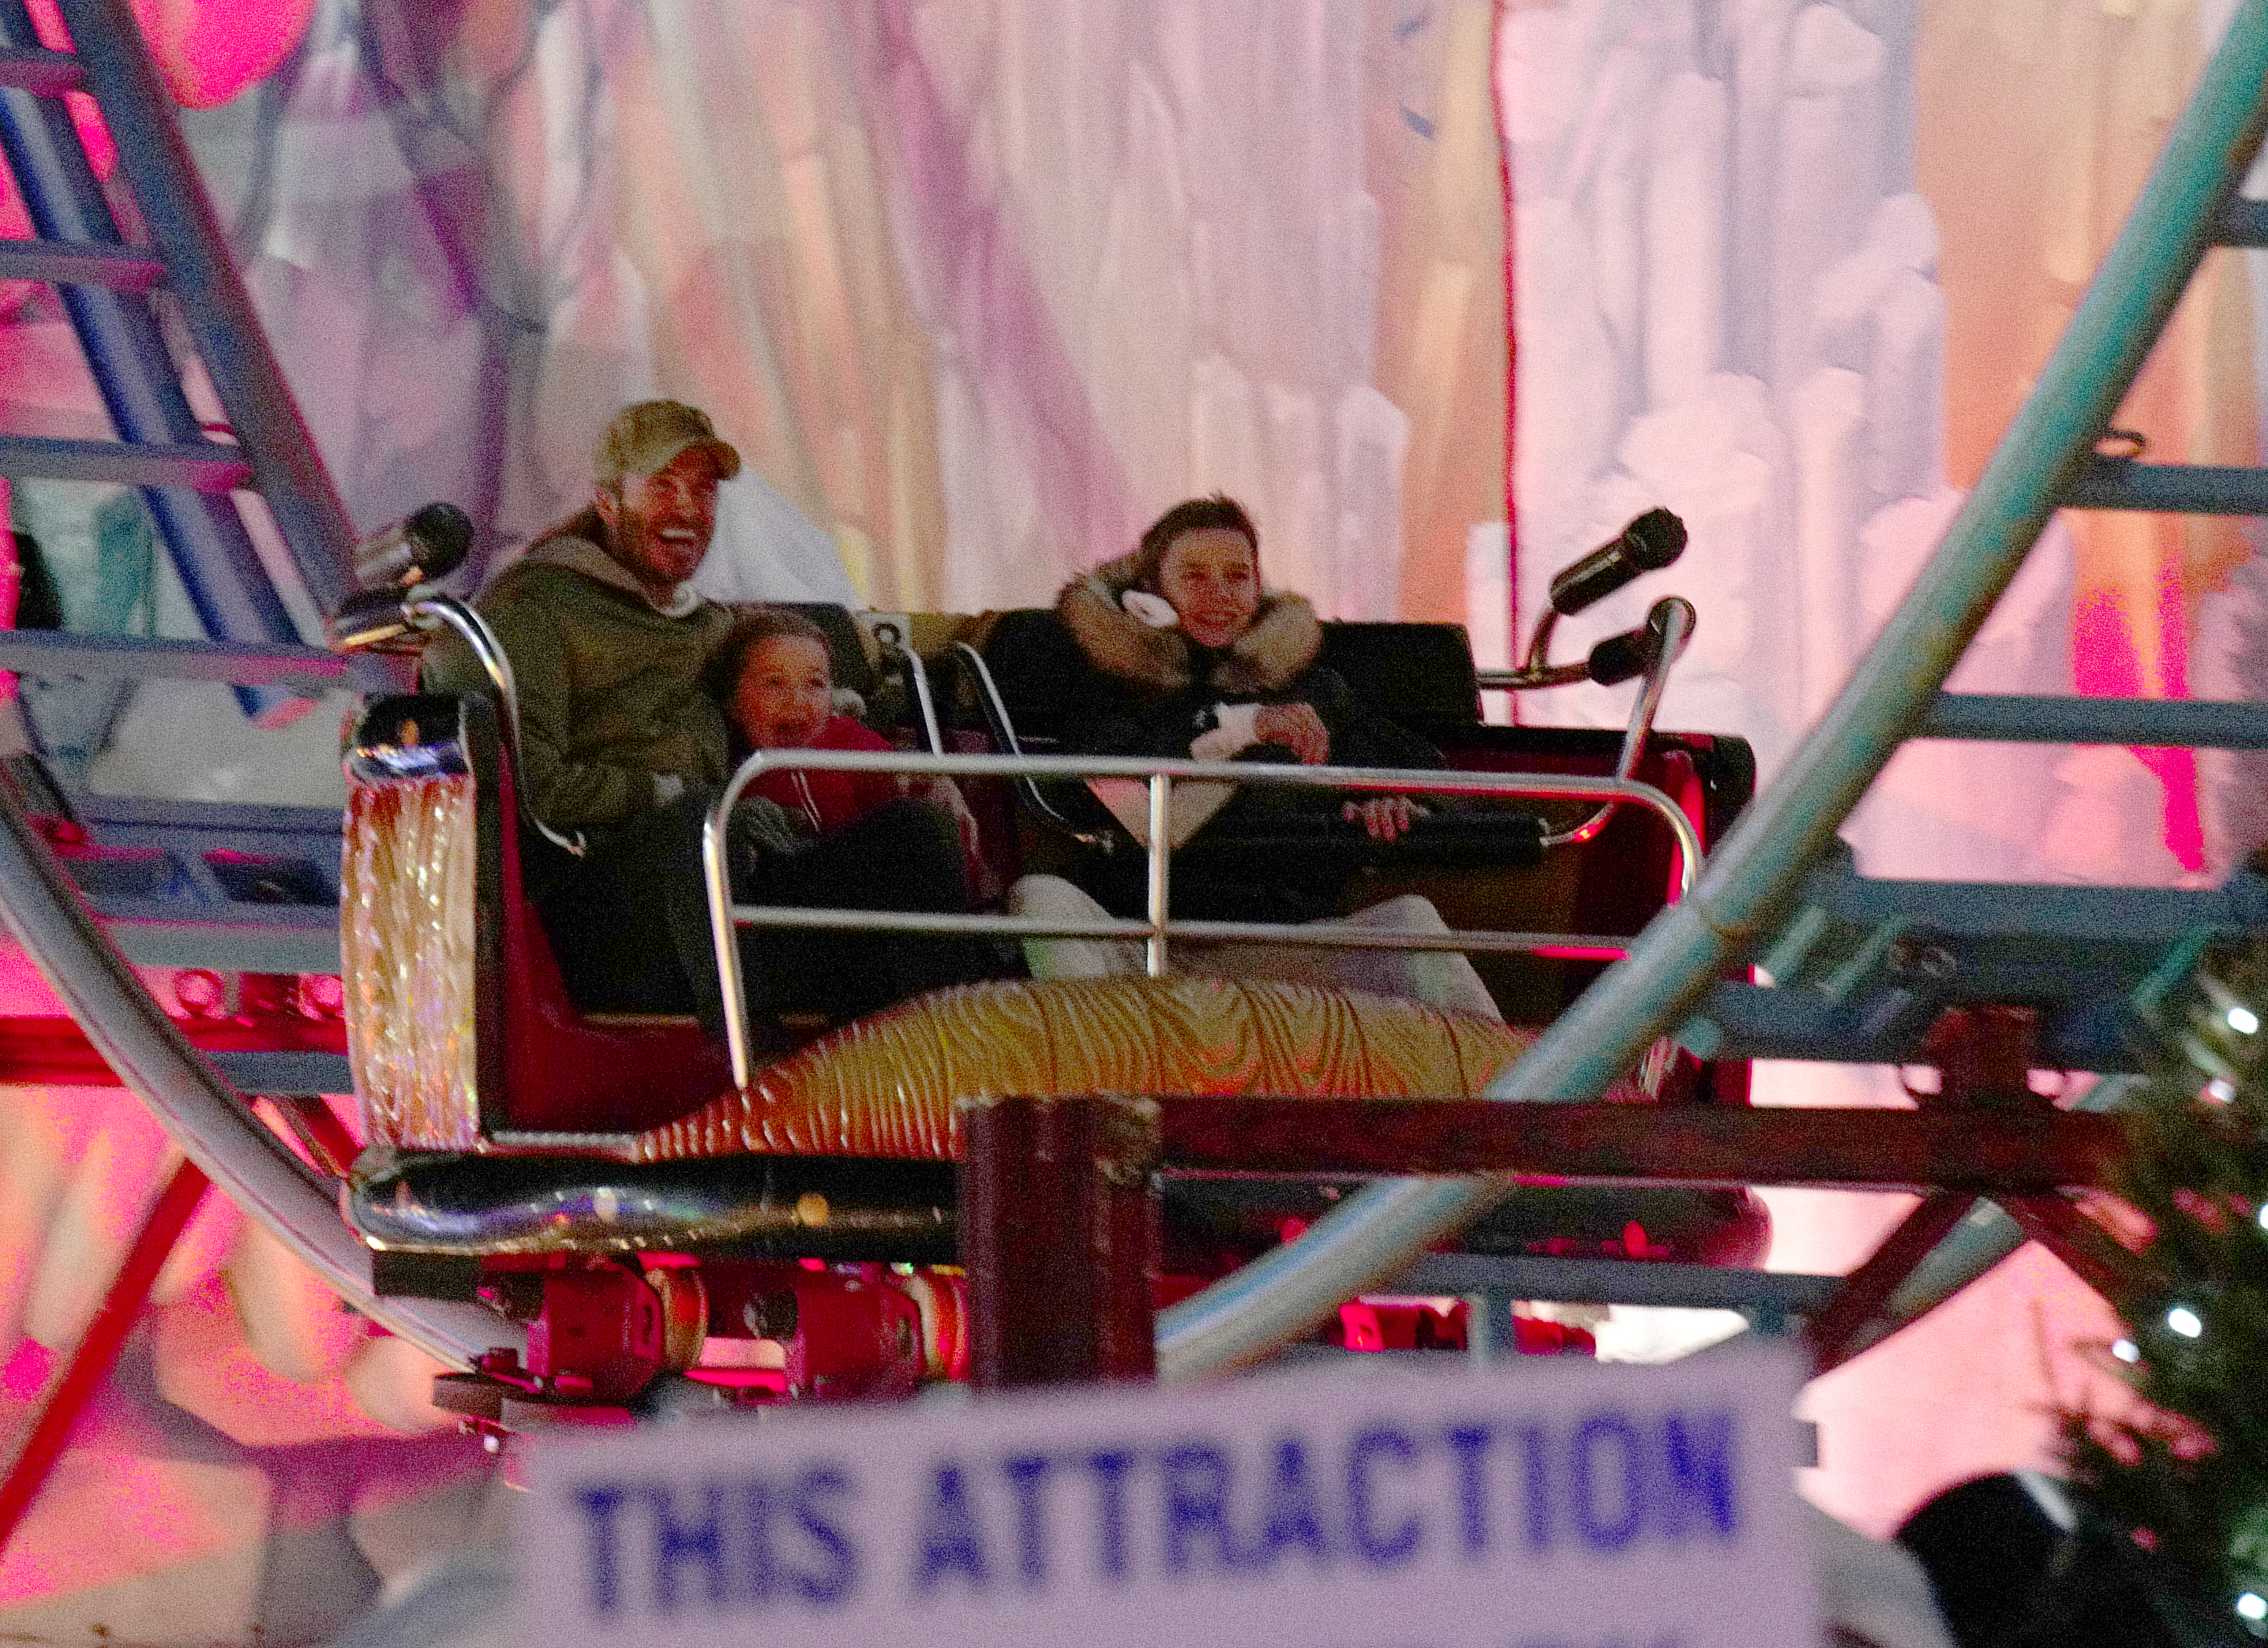 EXCLUSIVE: Doting dad David Beckham with kids Harper, Romeo and Cruz have a blast on the rides at Winter Wonderland, London. David and the kids were all smiles as they looked to be having a great family time on a rollercoaster and a pirate ship at the popular Christmas fair in Hyde Park.   Pics taken Nov 28th. <P> Pictured: Doting dad David Beckham, Harper, Romeo and Cruz <B>Ref: SPL1632599  051217   EXCLUSIVE</B><BR/> Picture by: Splash News<BR/> </P><P> <B>Splash News and Pictures</B><BR/> Los Angeles:	310-821-2666<BR/> New York:	212-619-2666<BR/> London:	870-934-2666<BR/> <span id=